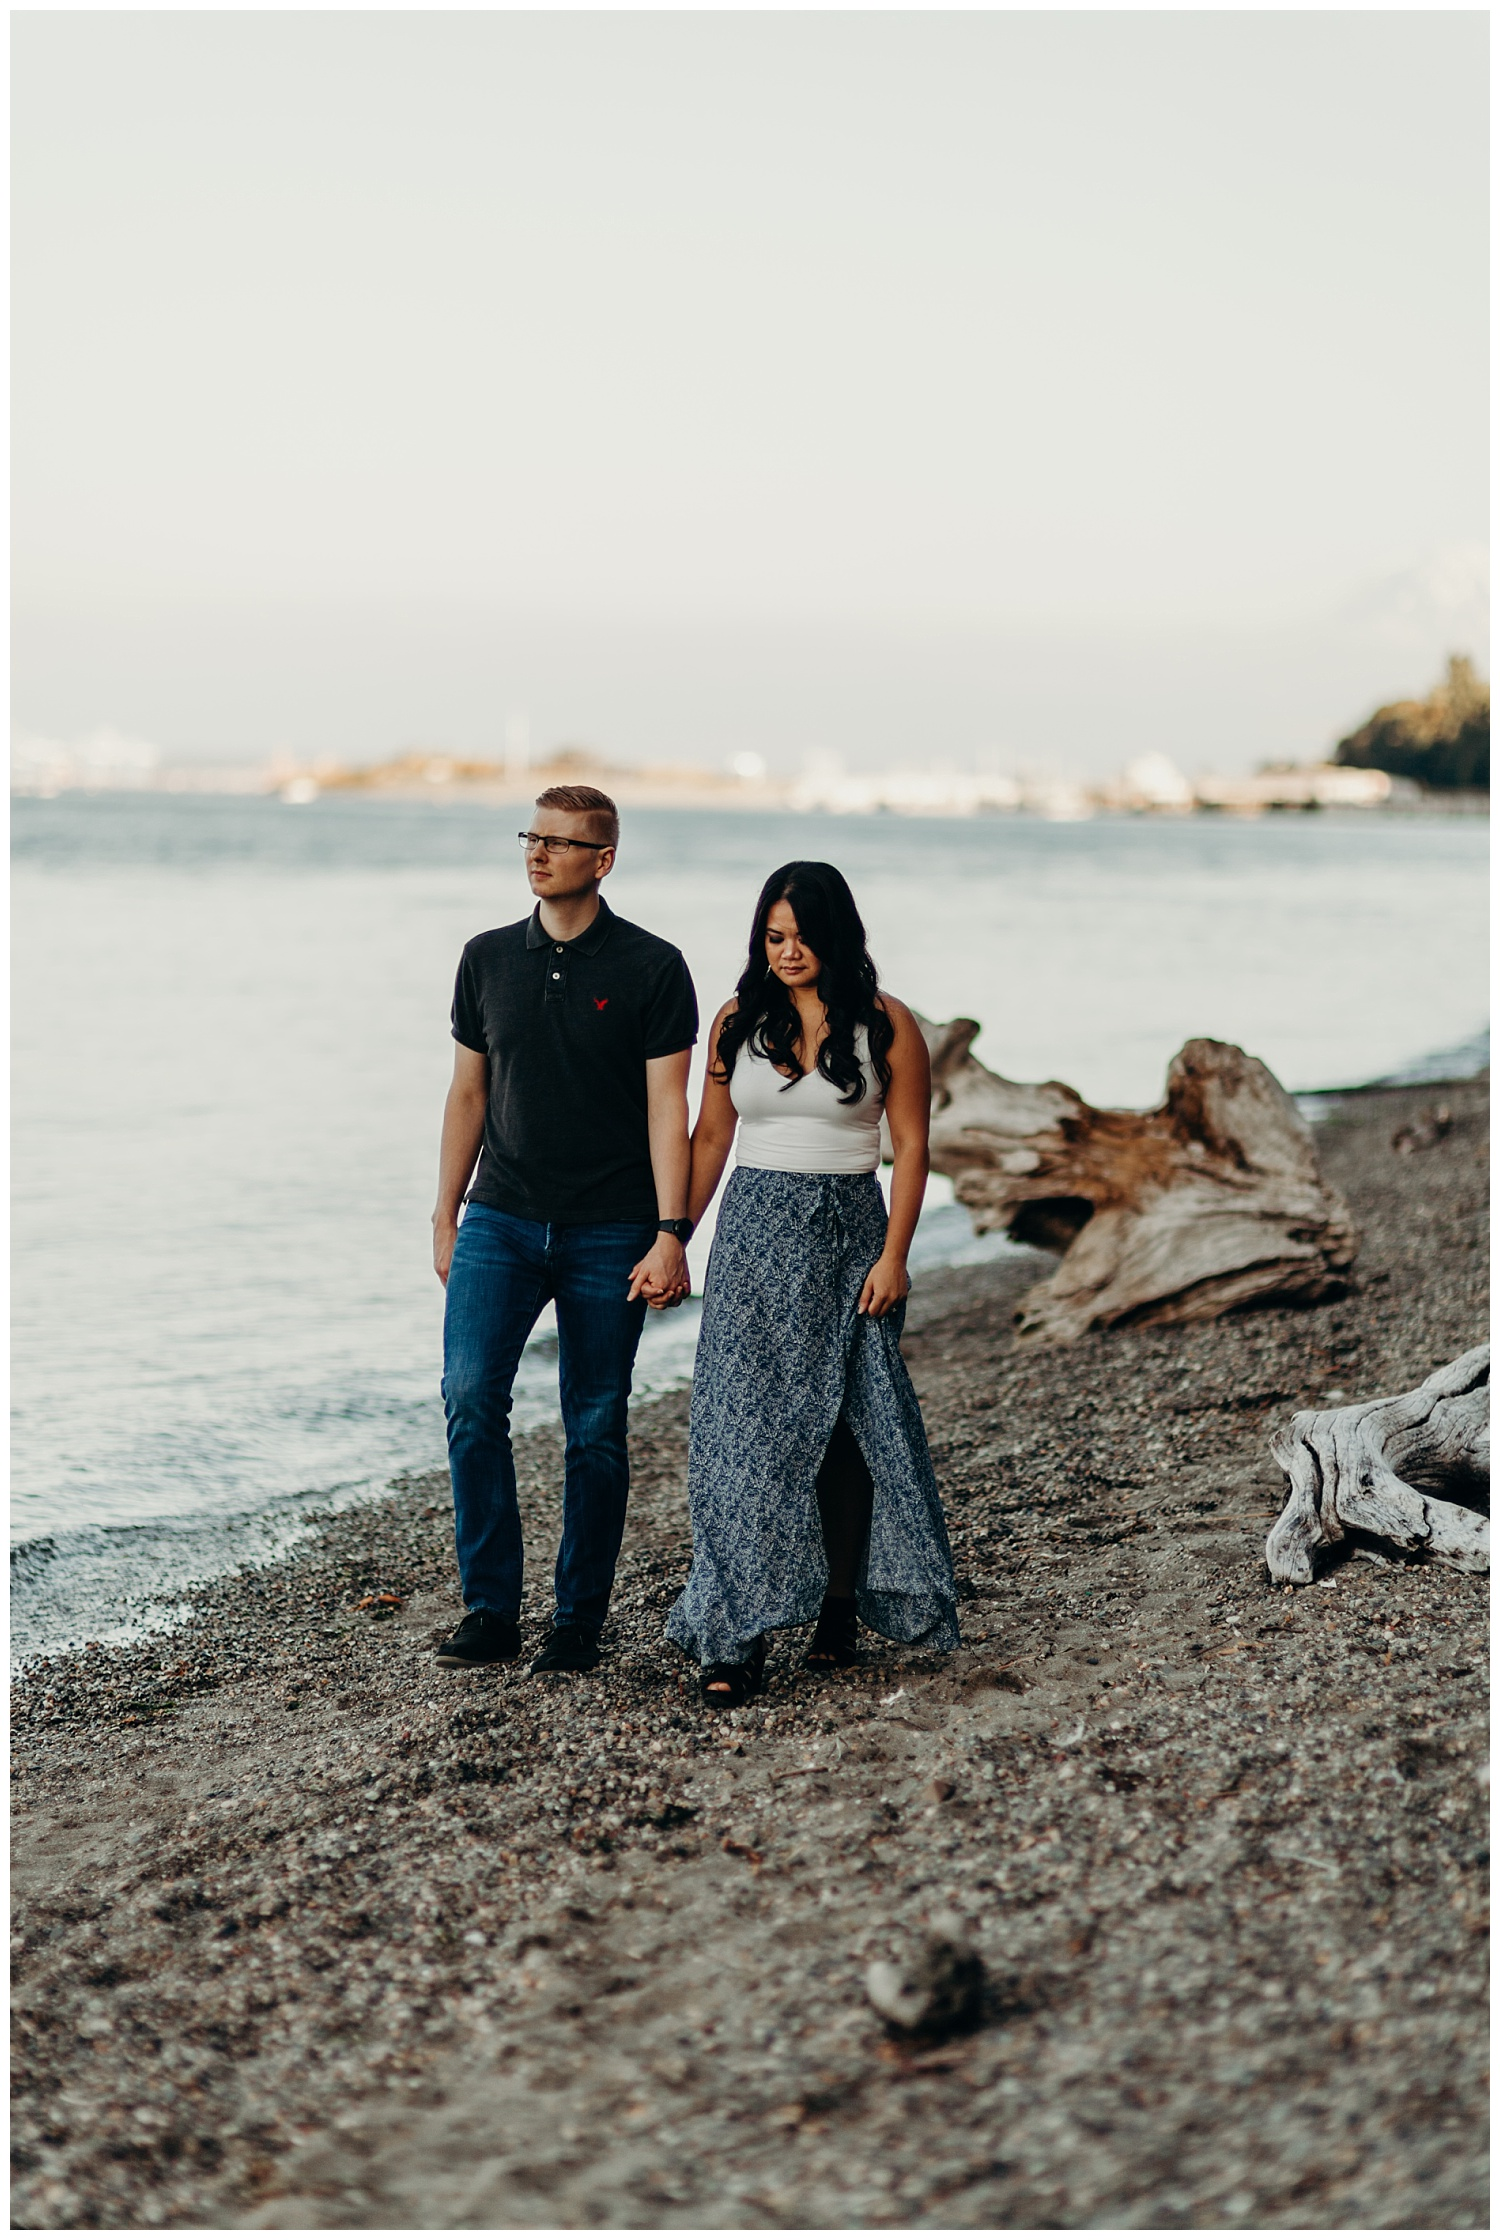 Jaynah and Kevin Point Defiance Rose Garden Owen Beach Tacoma Washington Engagement Session (29).jpg